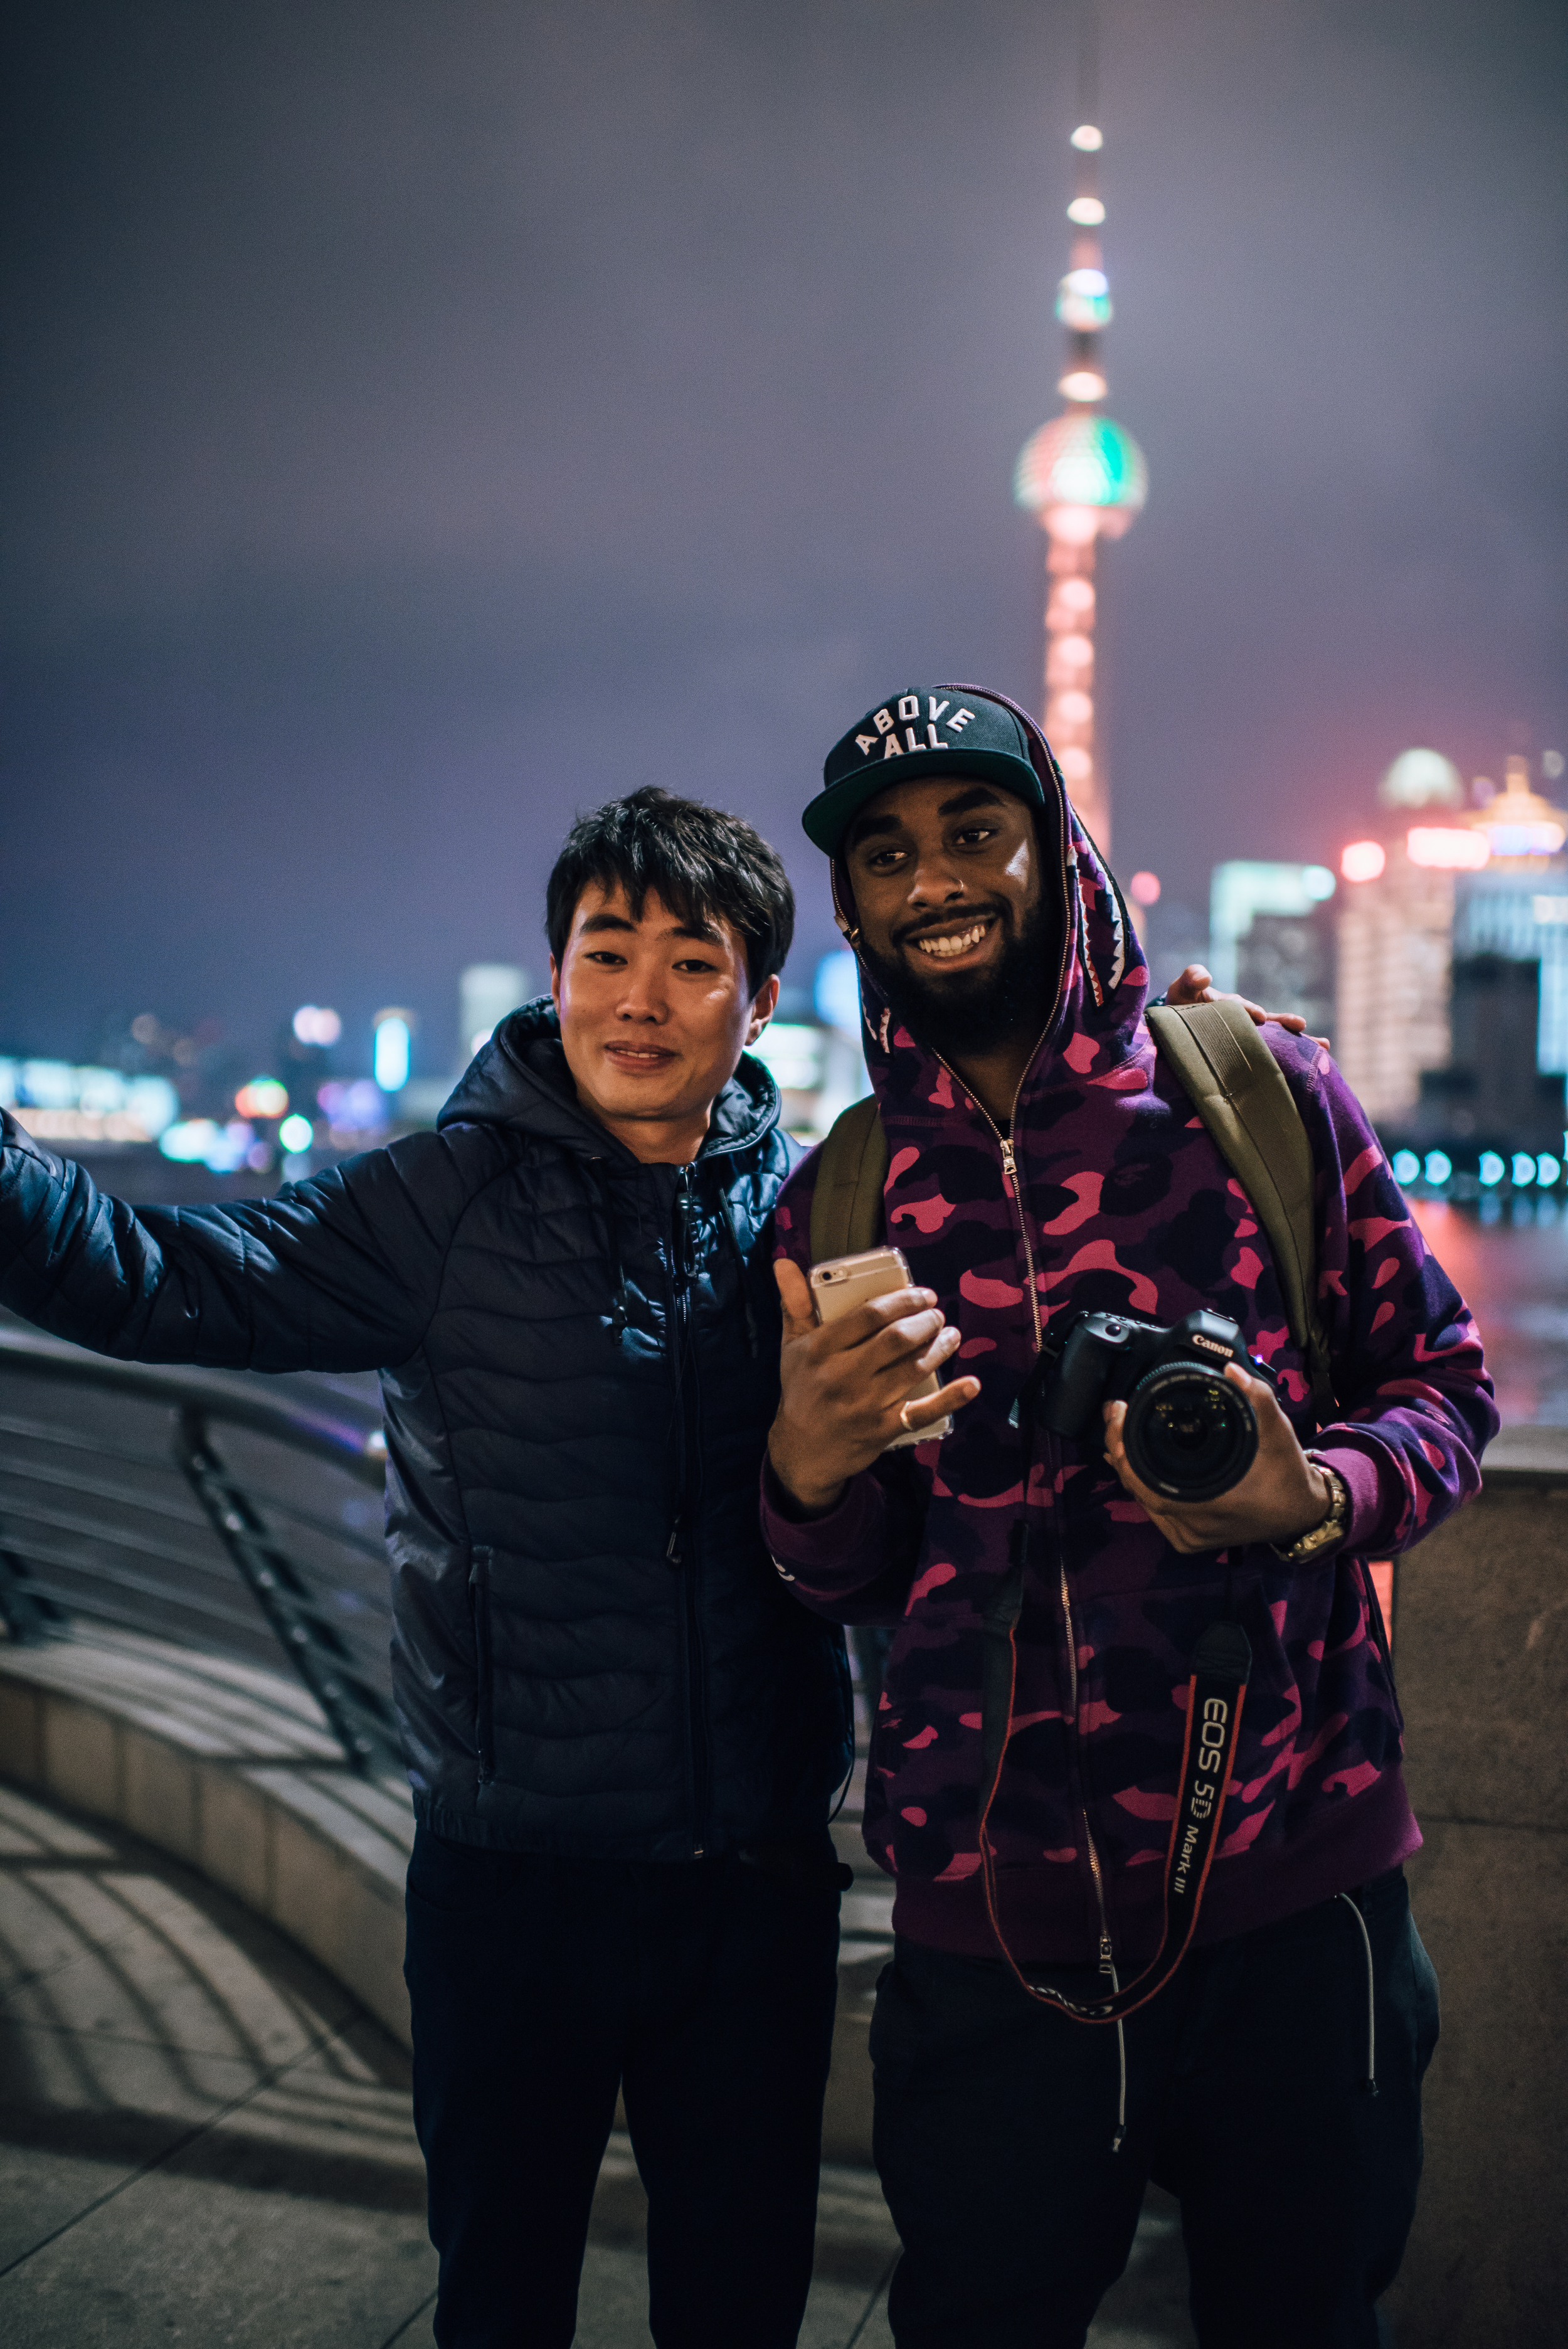 People in Shanghai don't see people like Noah often. At least four people wanted photos.